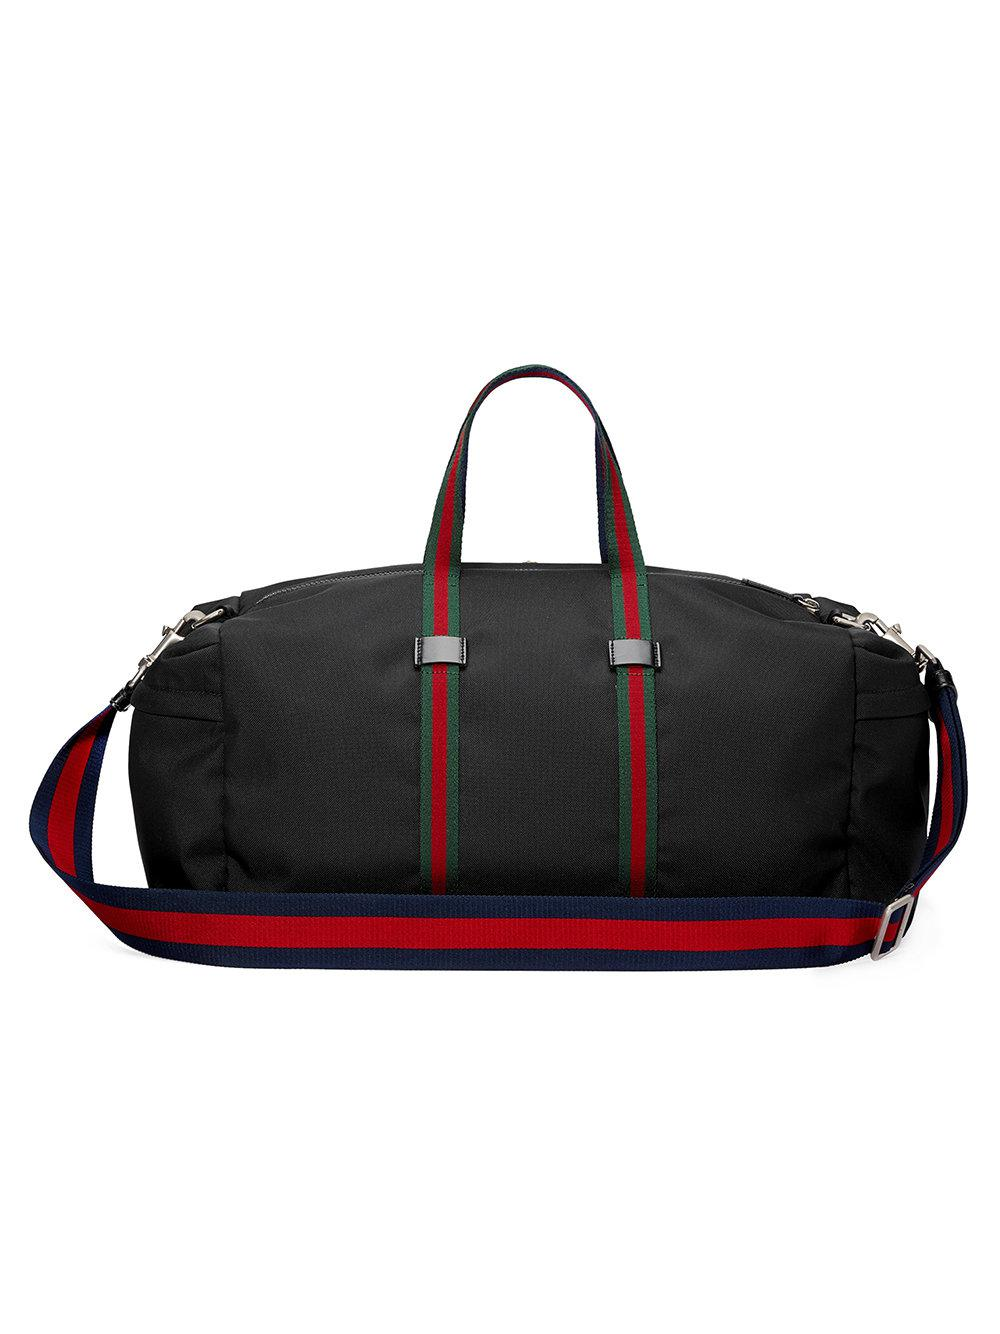 c4e0d28b3702 Gucci Technical Canvas Duffle in Black for Men - Lyst